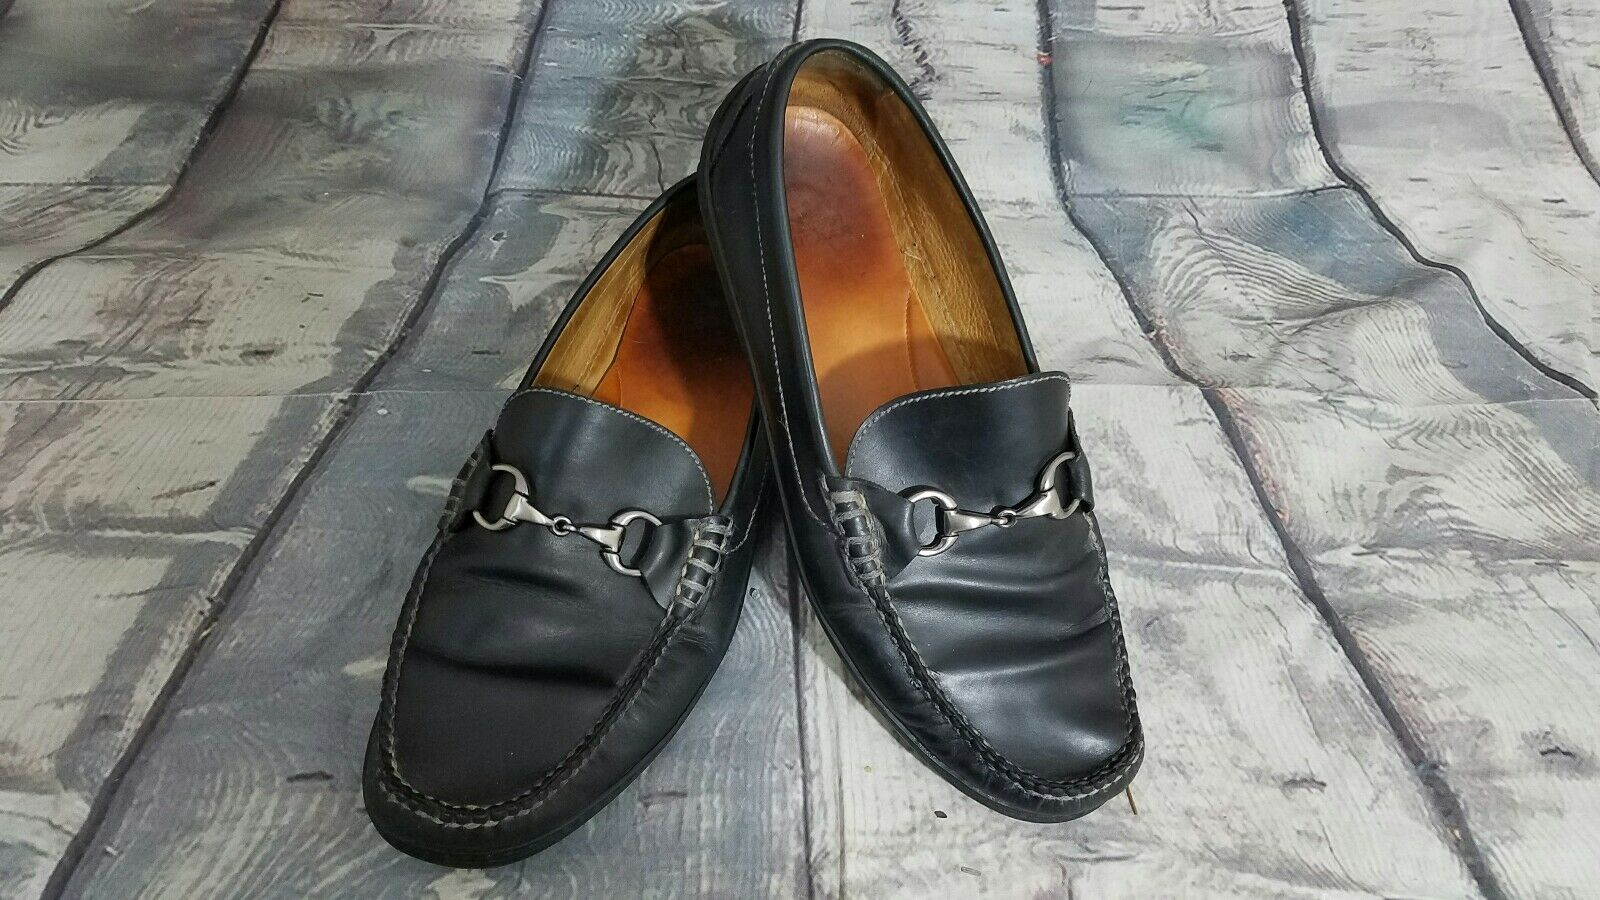 Peter Millar Men's Black Horse Bit Leather Slip On Penny Loafers Sz 11 EUC